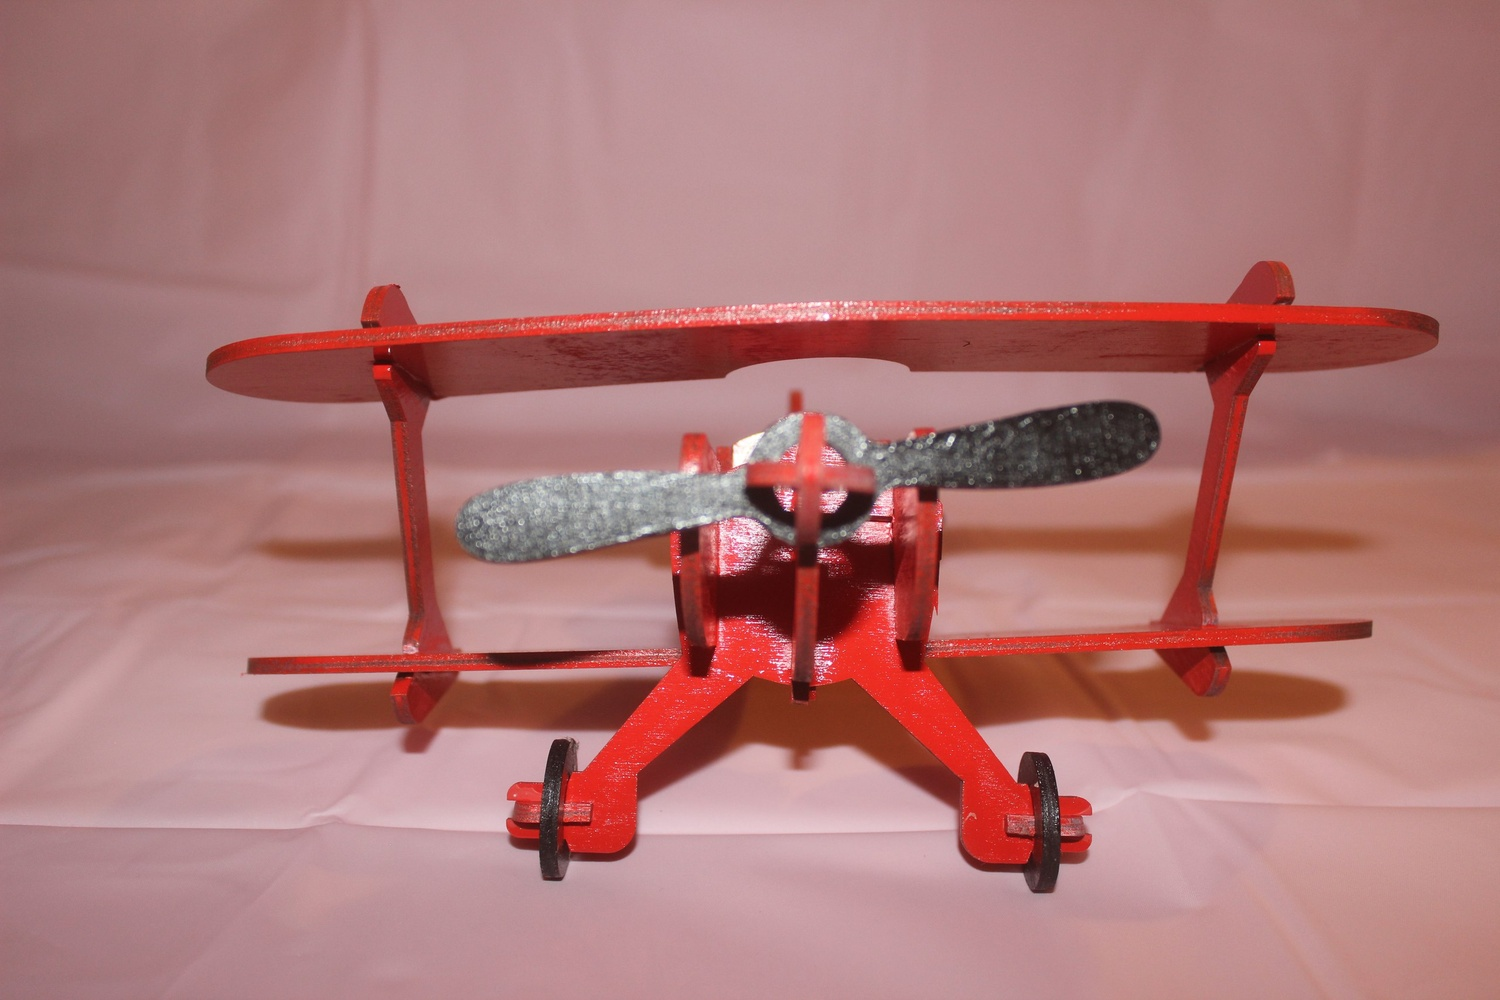 Laser Cut Wooden Airplane Toy For Kids Free Vector